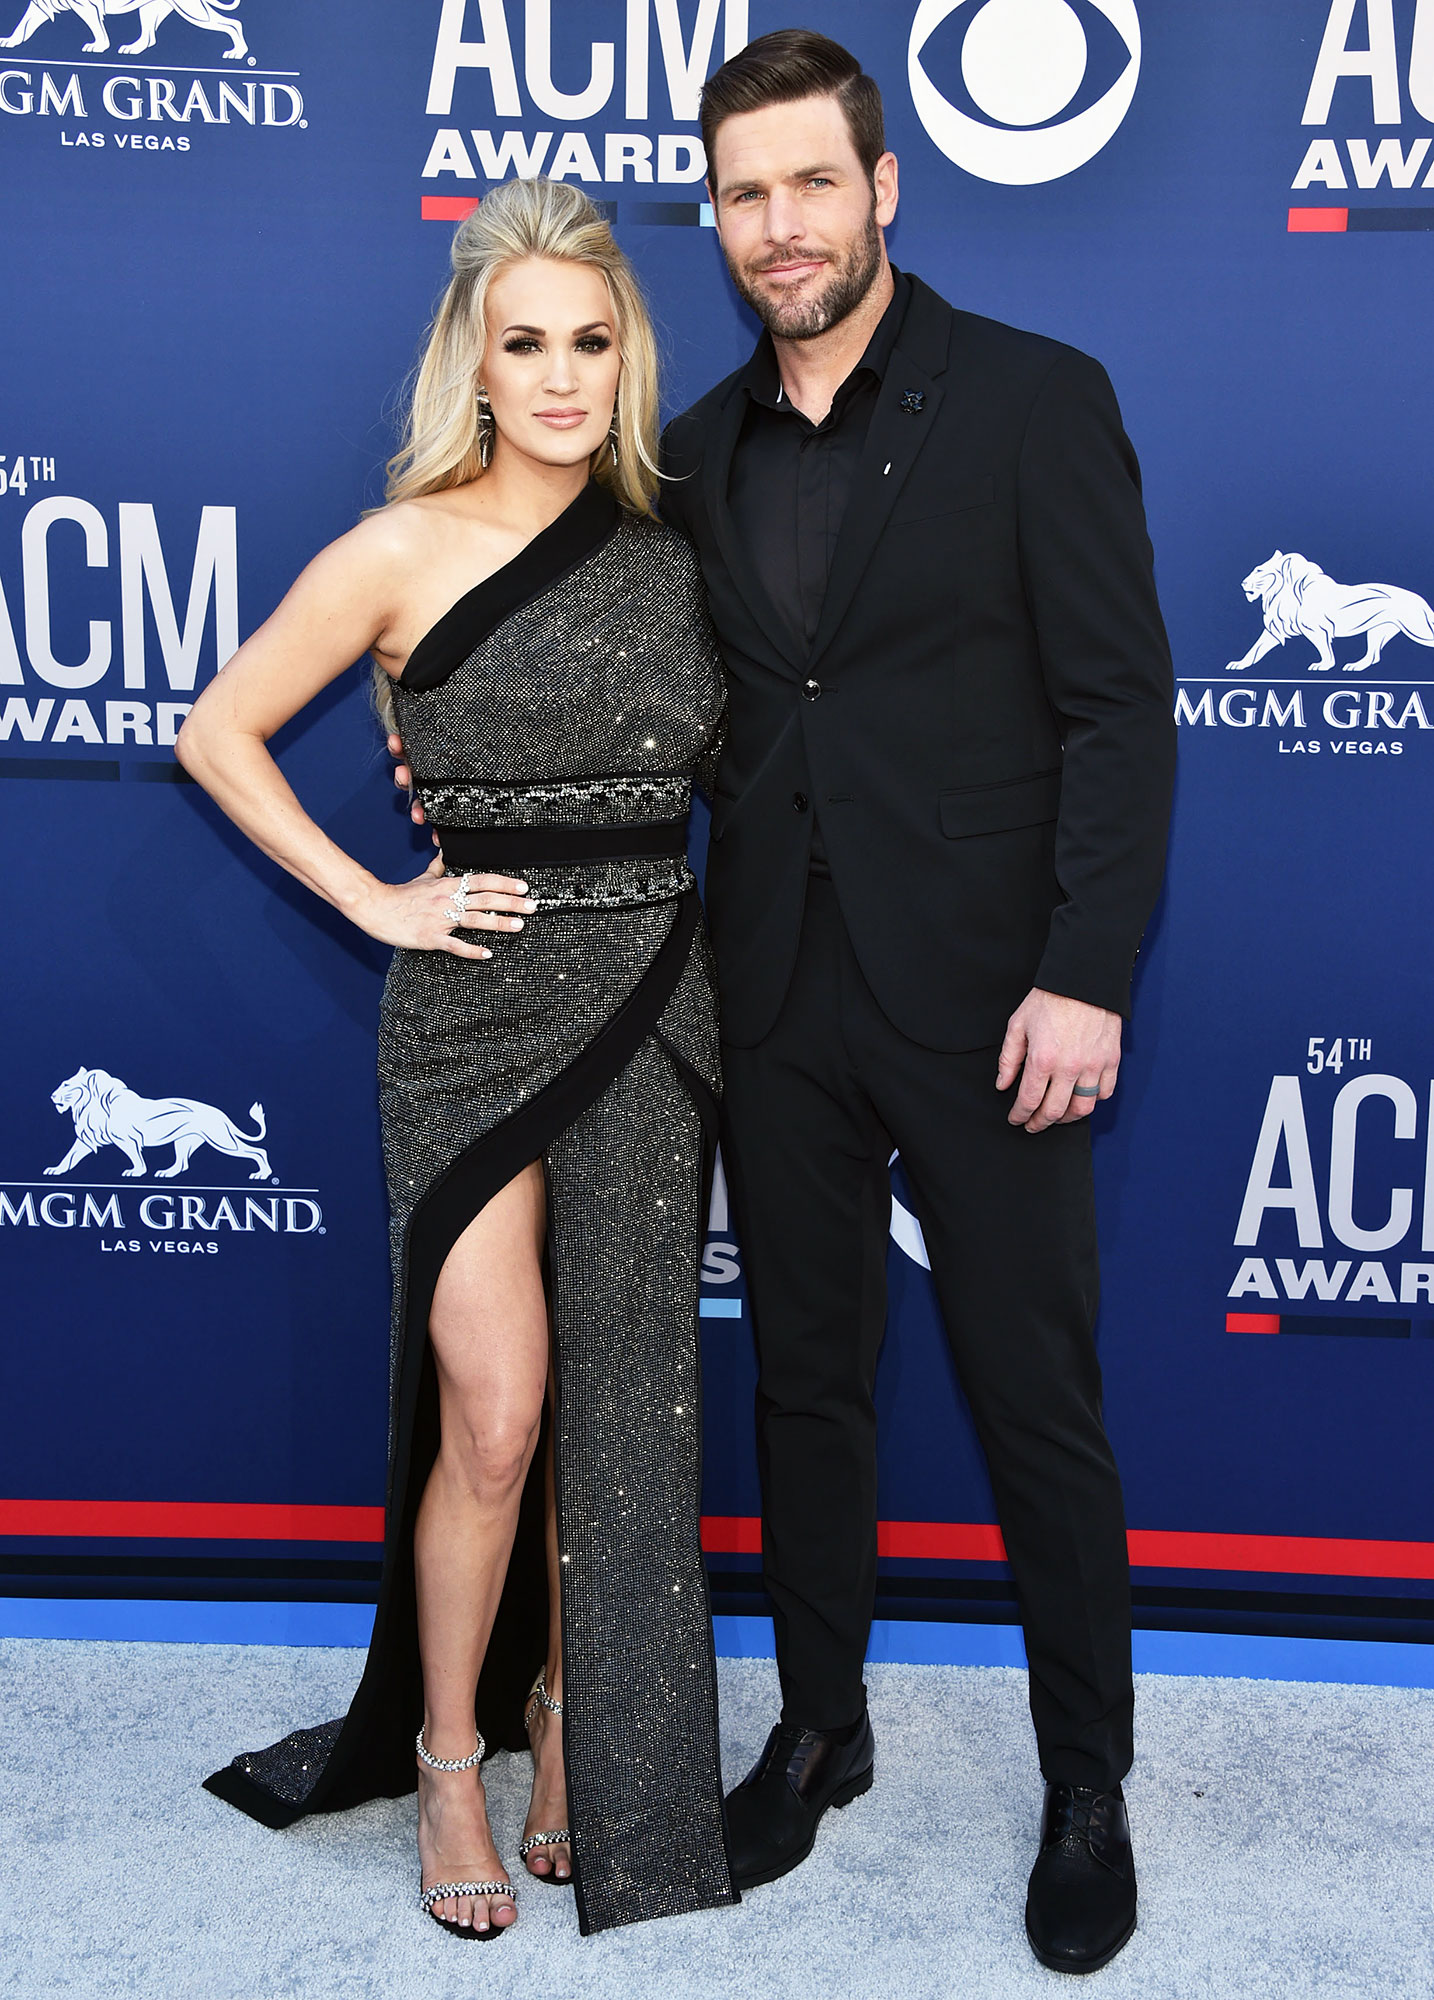 Carrie Underwood Post Baby Body Performs ACM Awards 2019 Mike Fisher